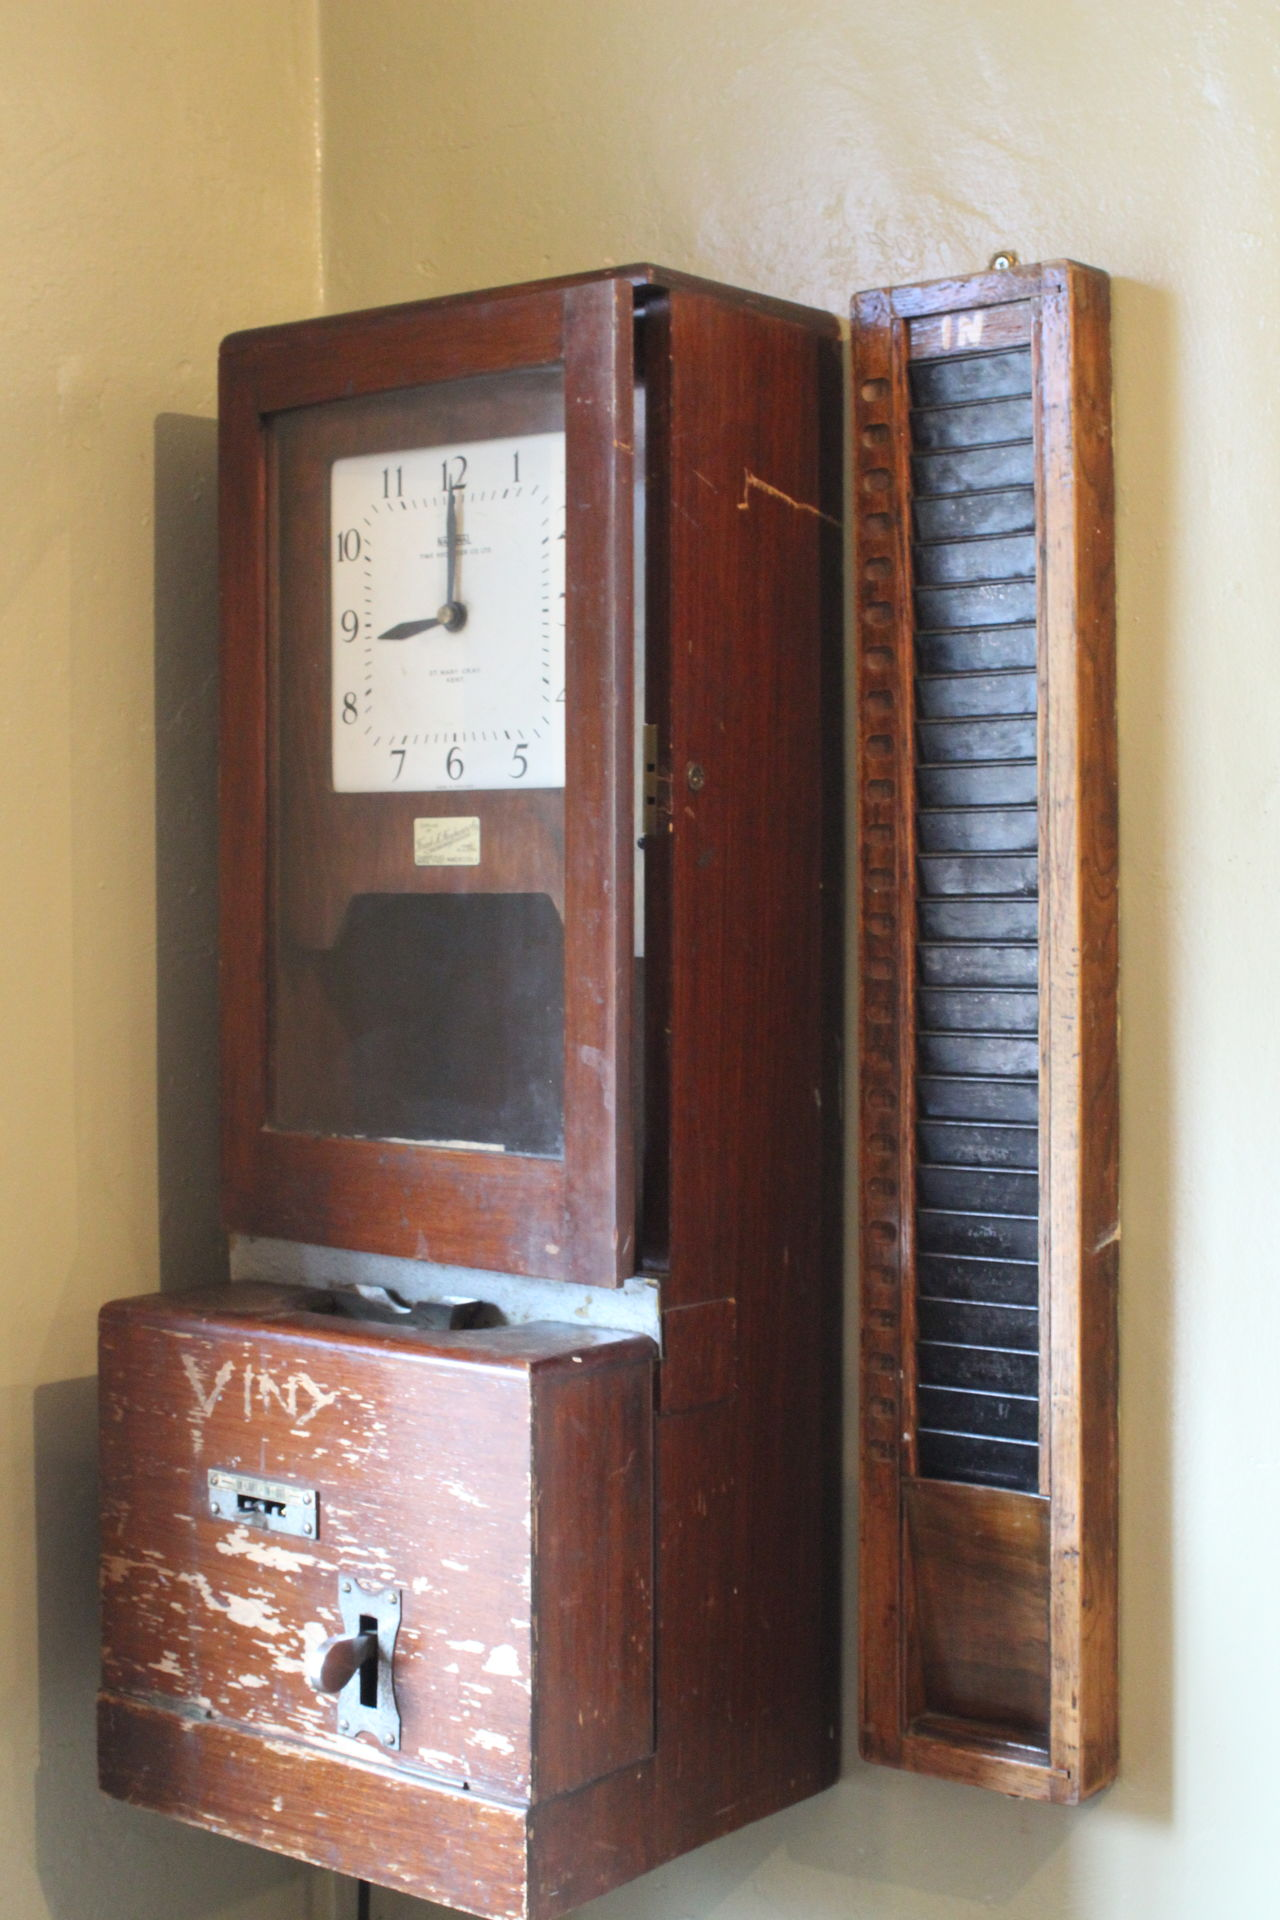 Antique Clock Clock Face Clocking In Clocking In Machine Clockingout Close-up Day Factory History Indoors  Museum No People Obsolete Old Old-fashioned Retro Styled Technology Time Vintage